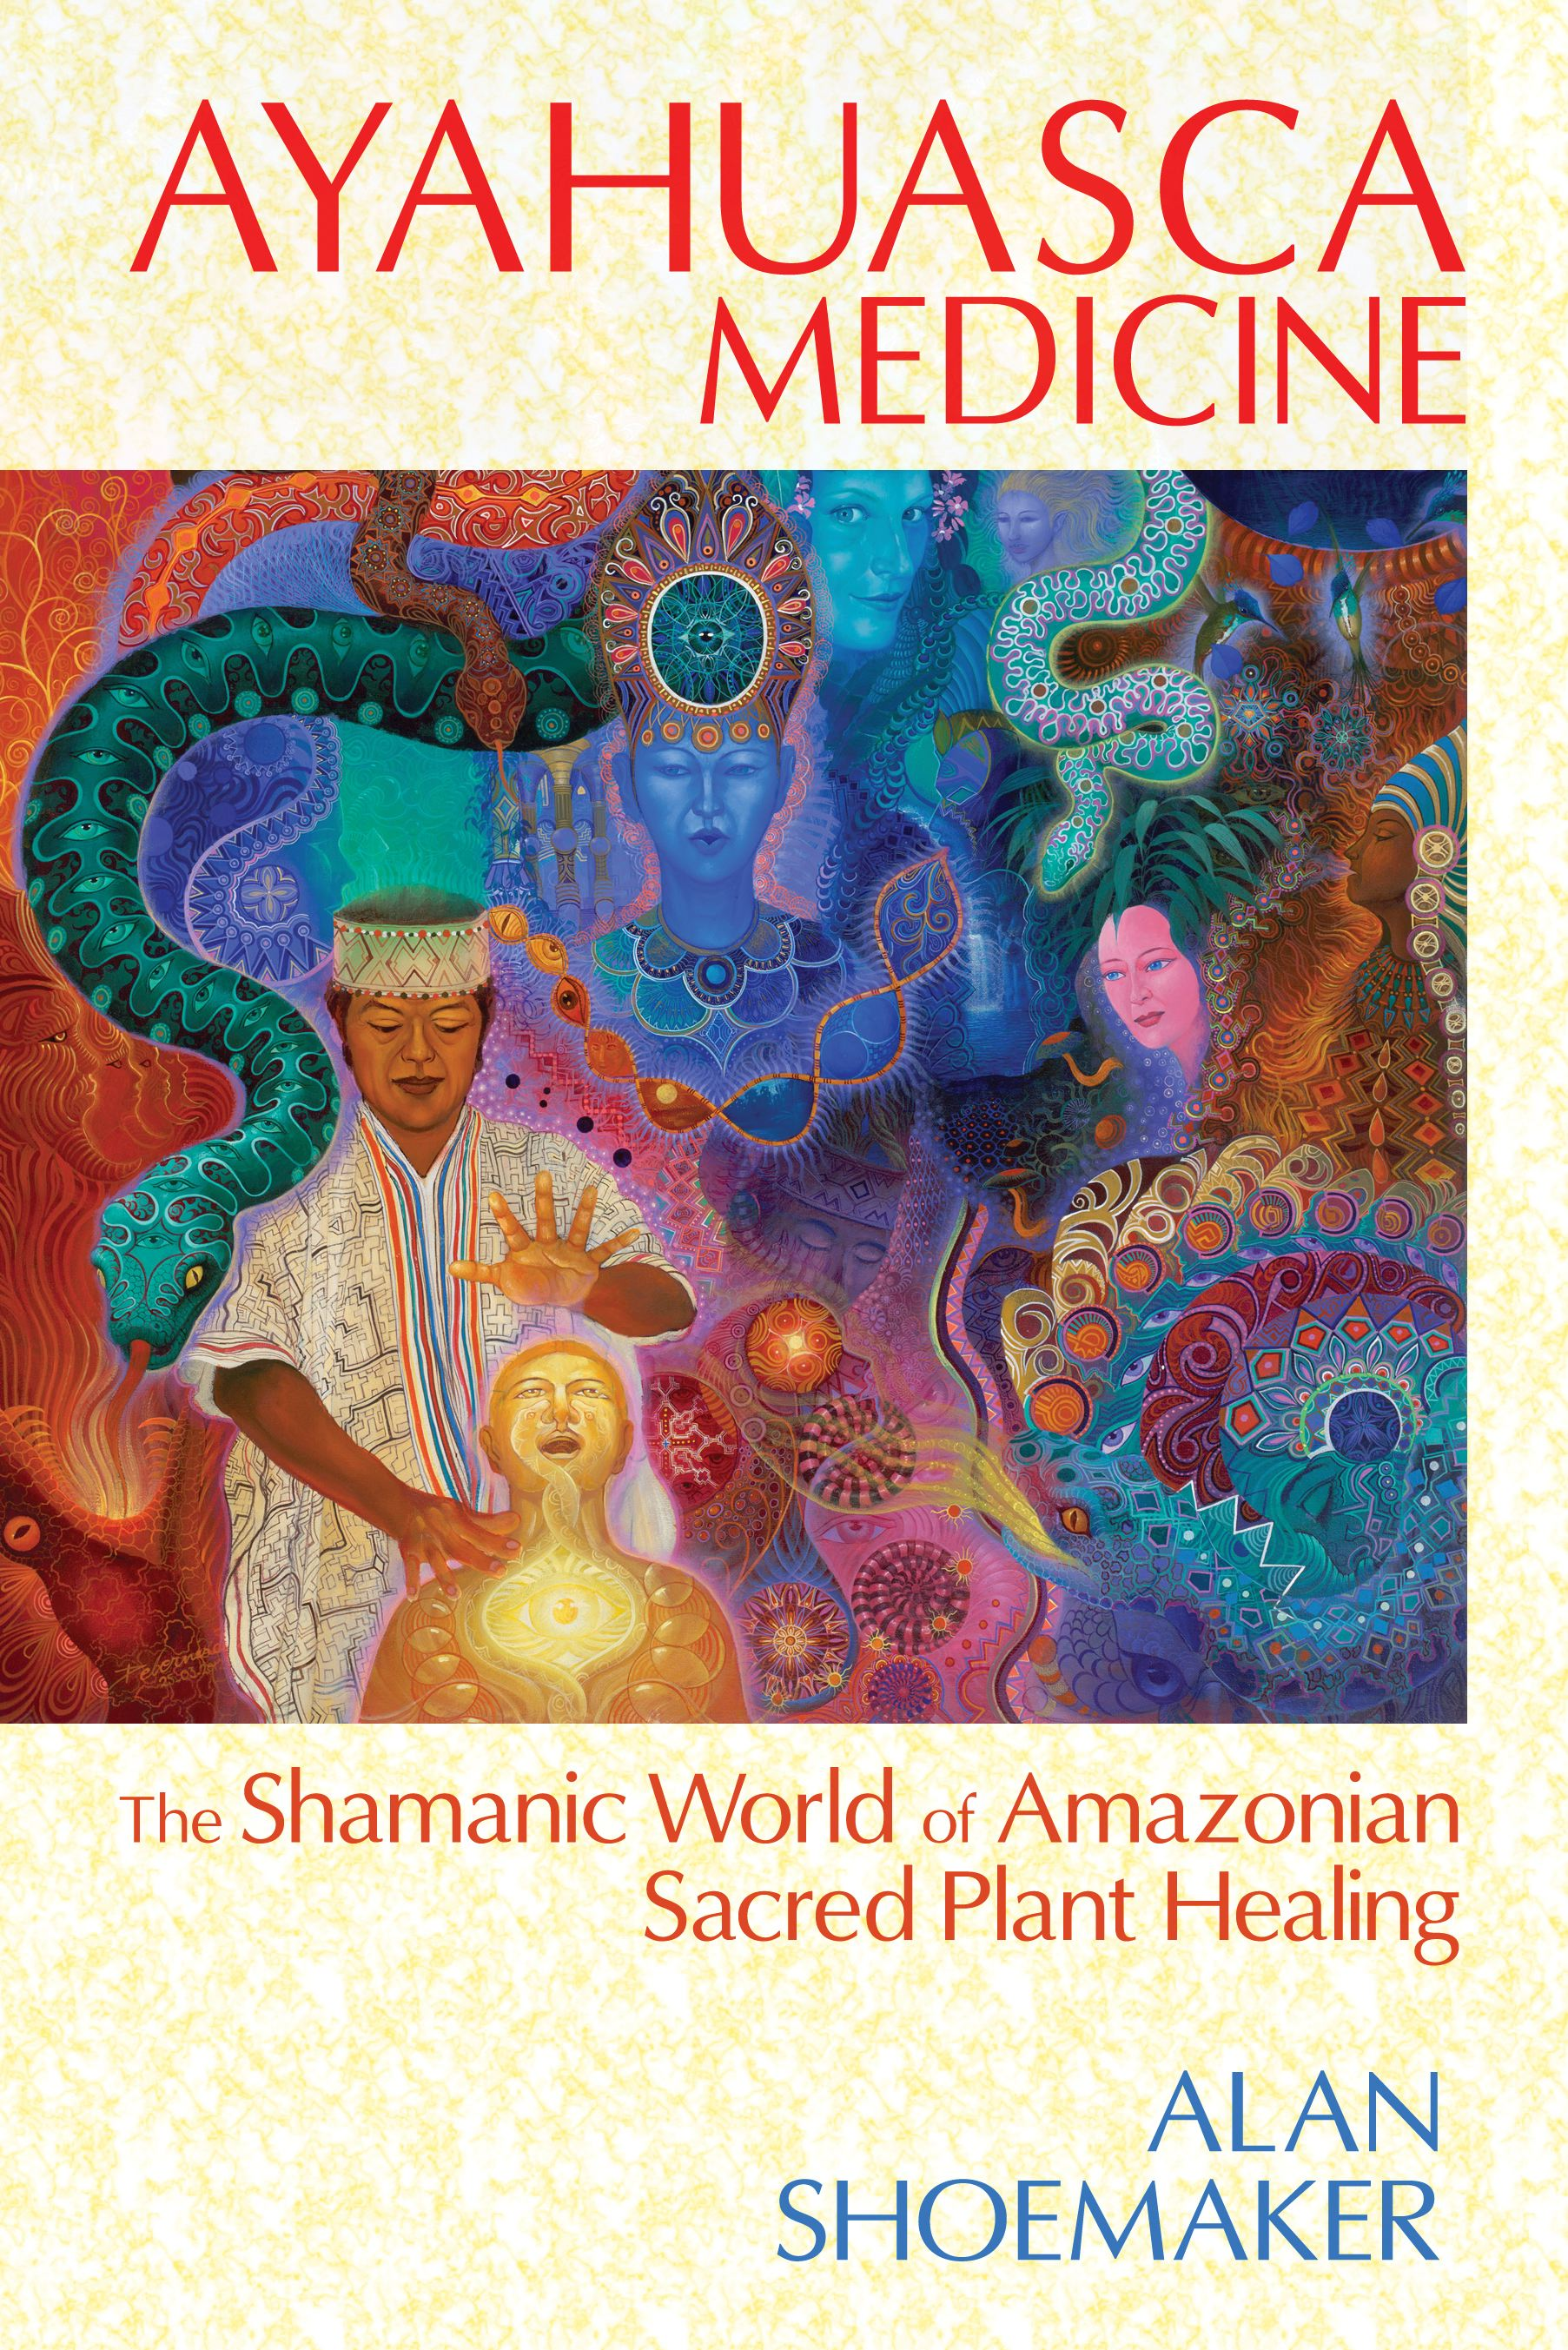 Ayahuasca Medicine   Book by Alan Shoemaker   Official Publisher